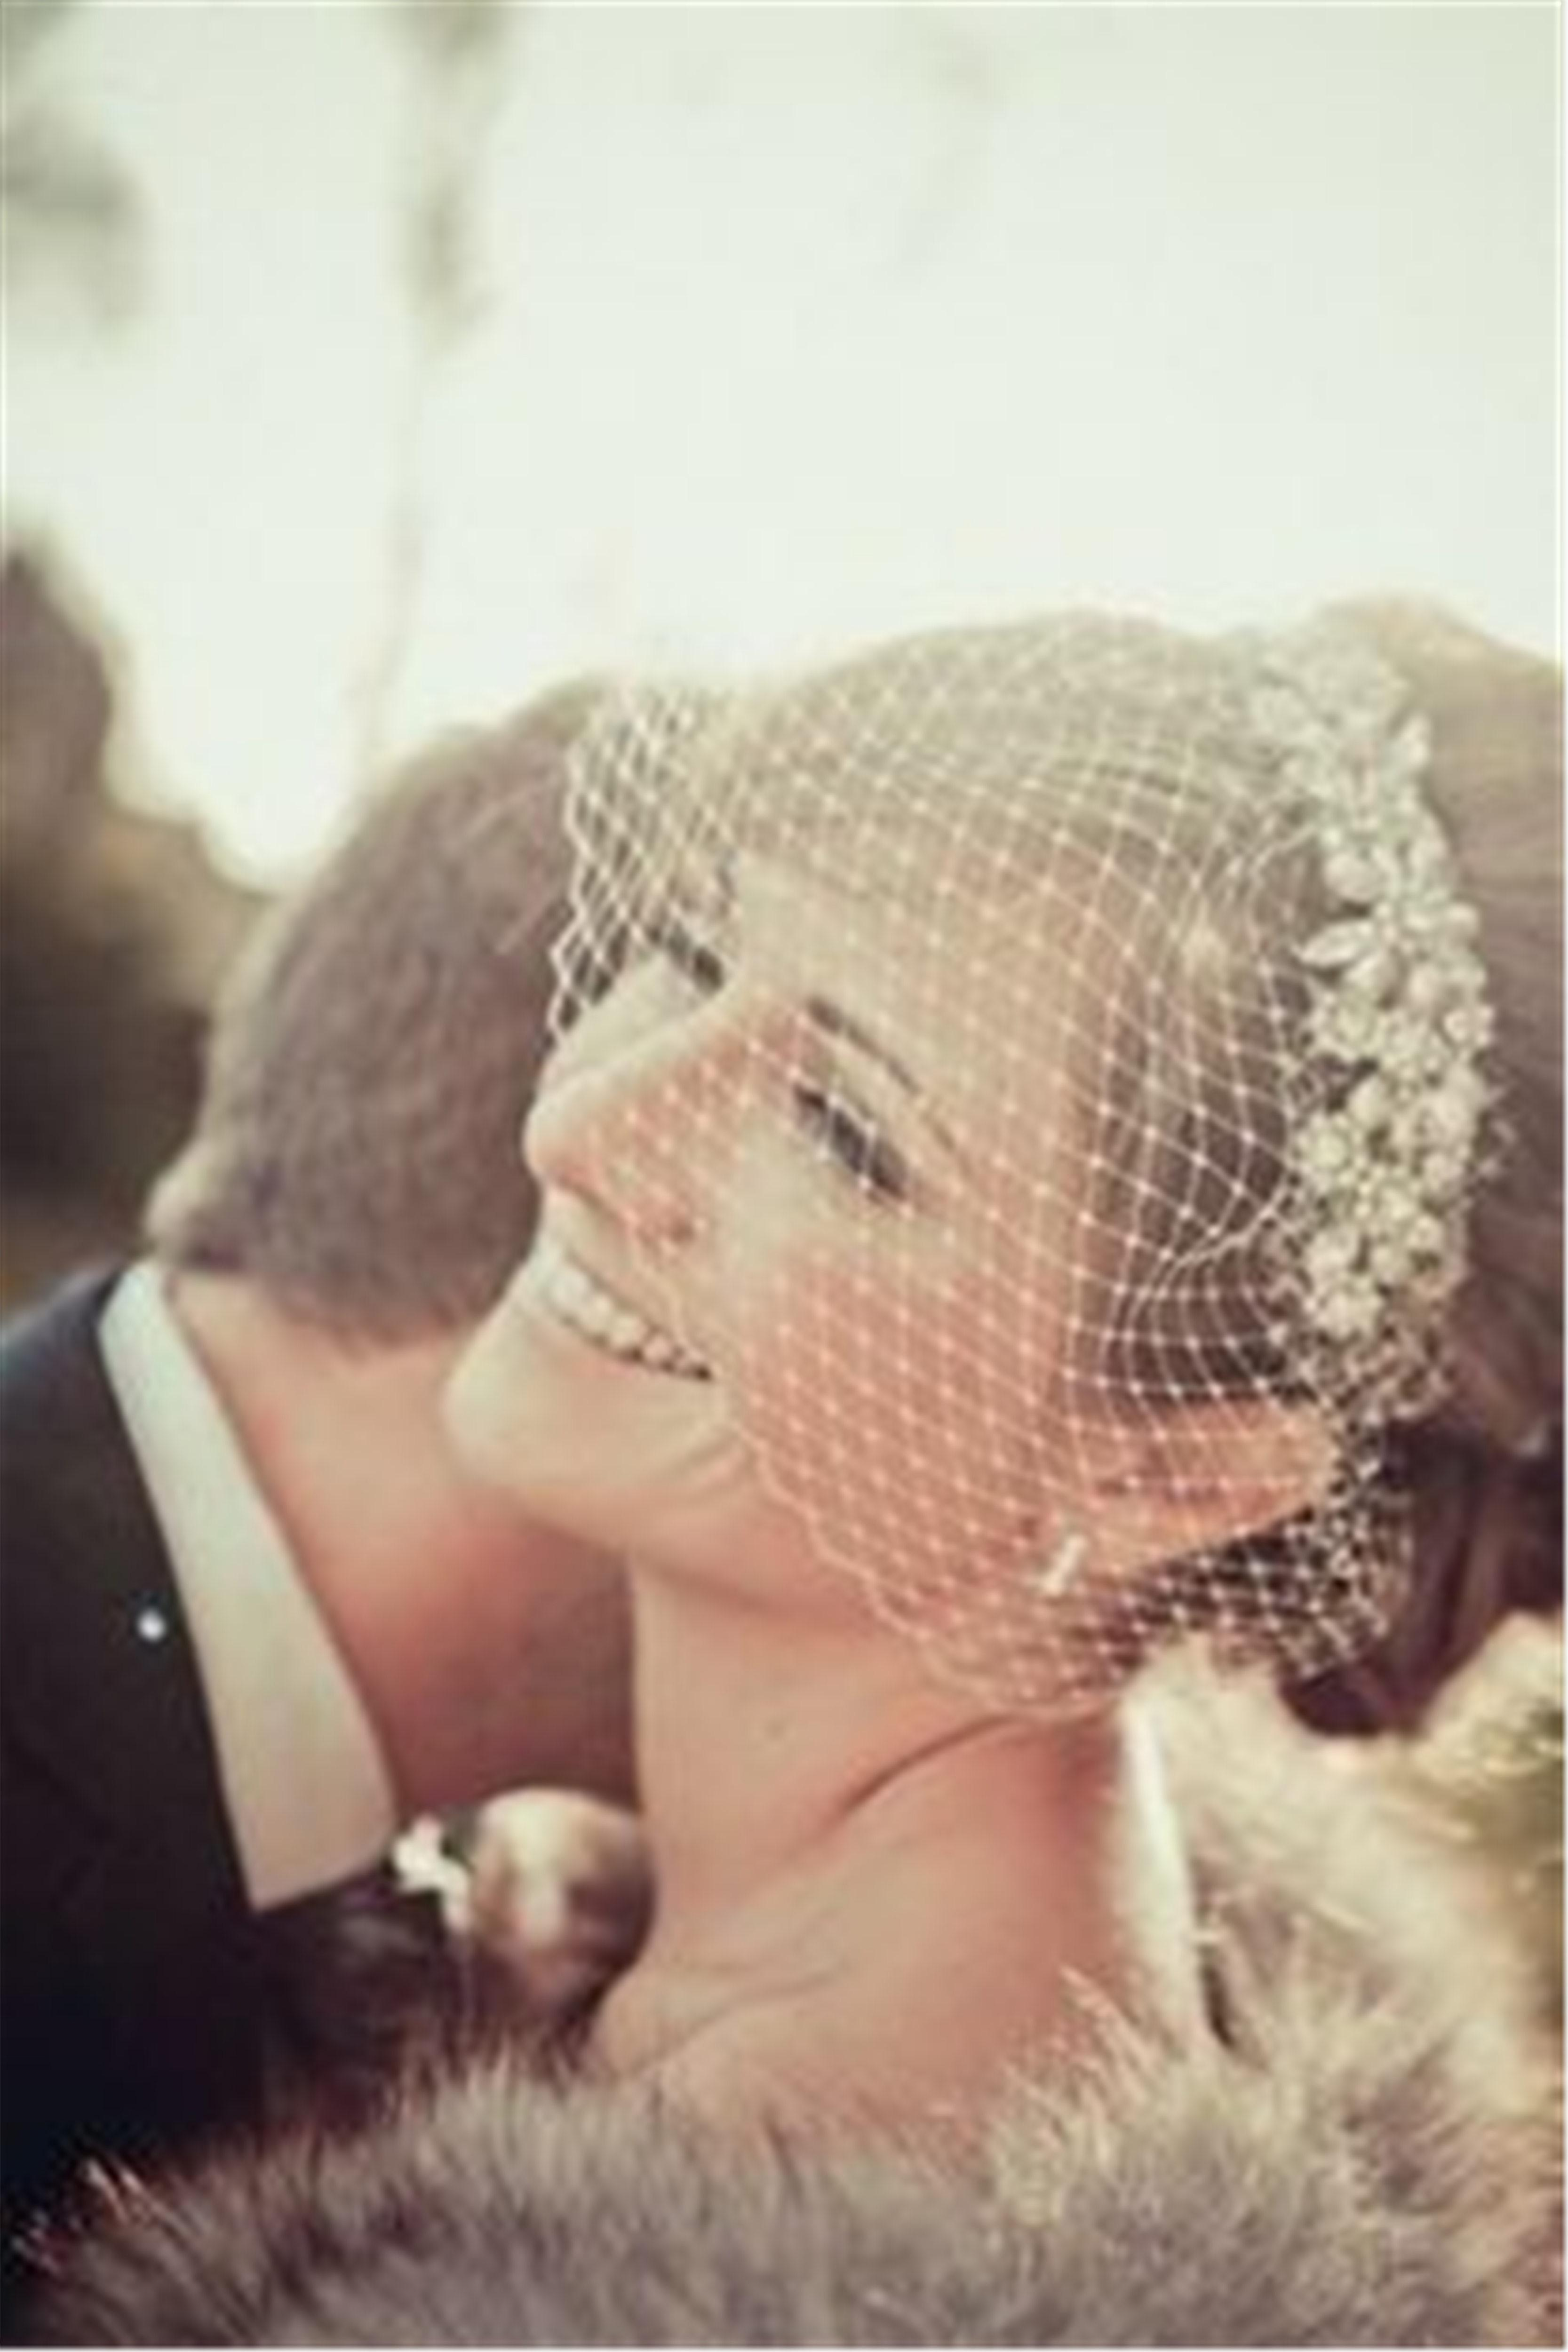 2017 Vintage Birdcage Veils Face Blusher Wedding Hair Pieces Crystal Pearls One Layer Short French Net Bridal Headpieces Crown Veils SKU451 Bridal Veils Wholesale Cathedral Bridal Veil From Lindabridal, $13.19| DHgate.Com